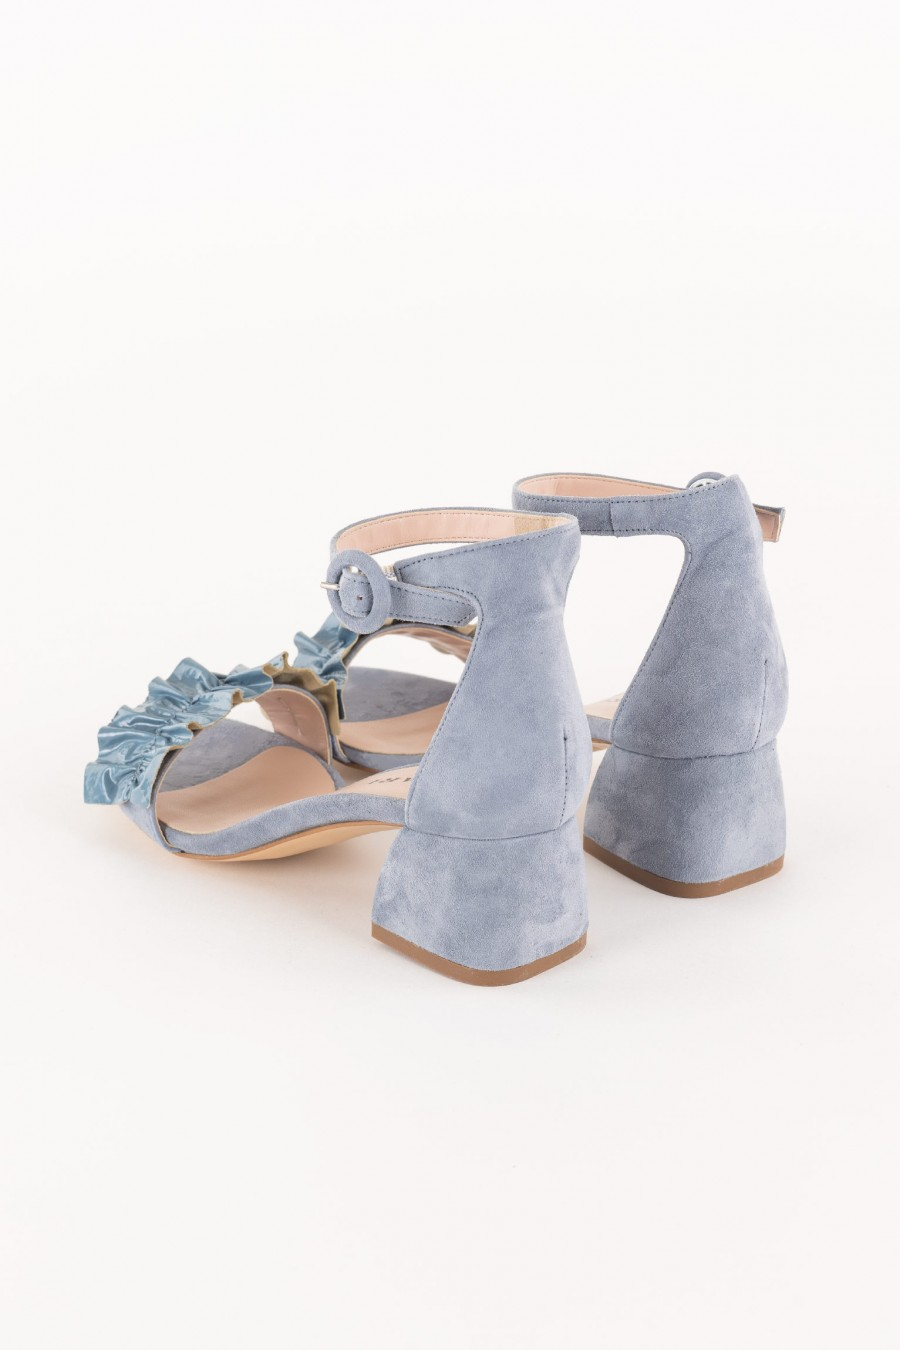 light blue sandal with patent leather ruffle on the strap